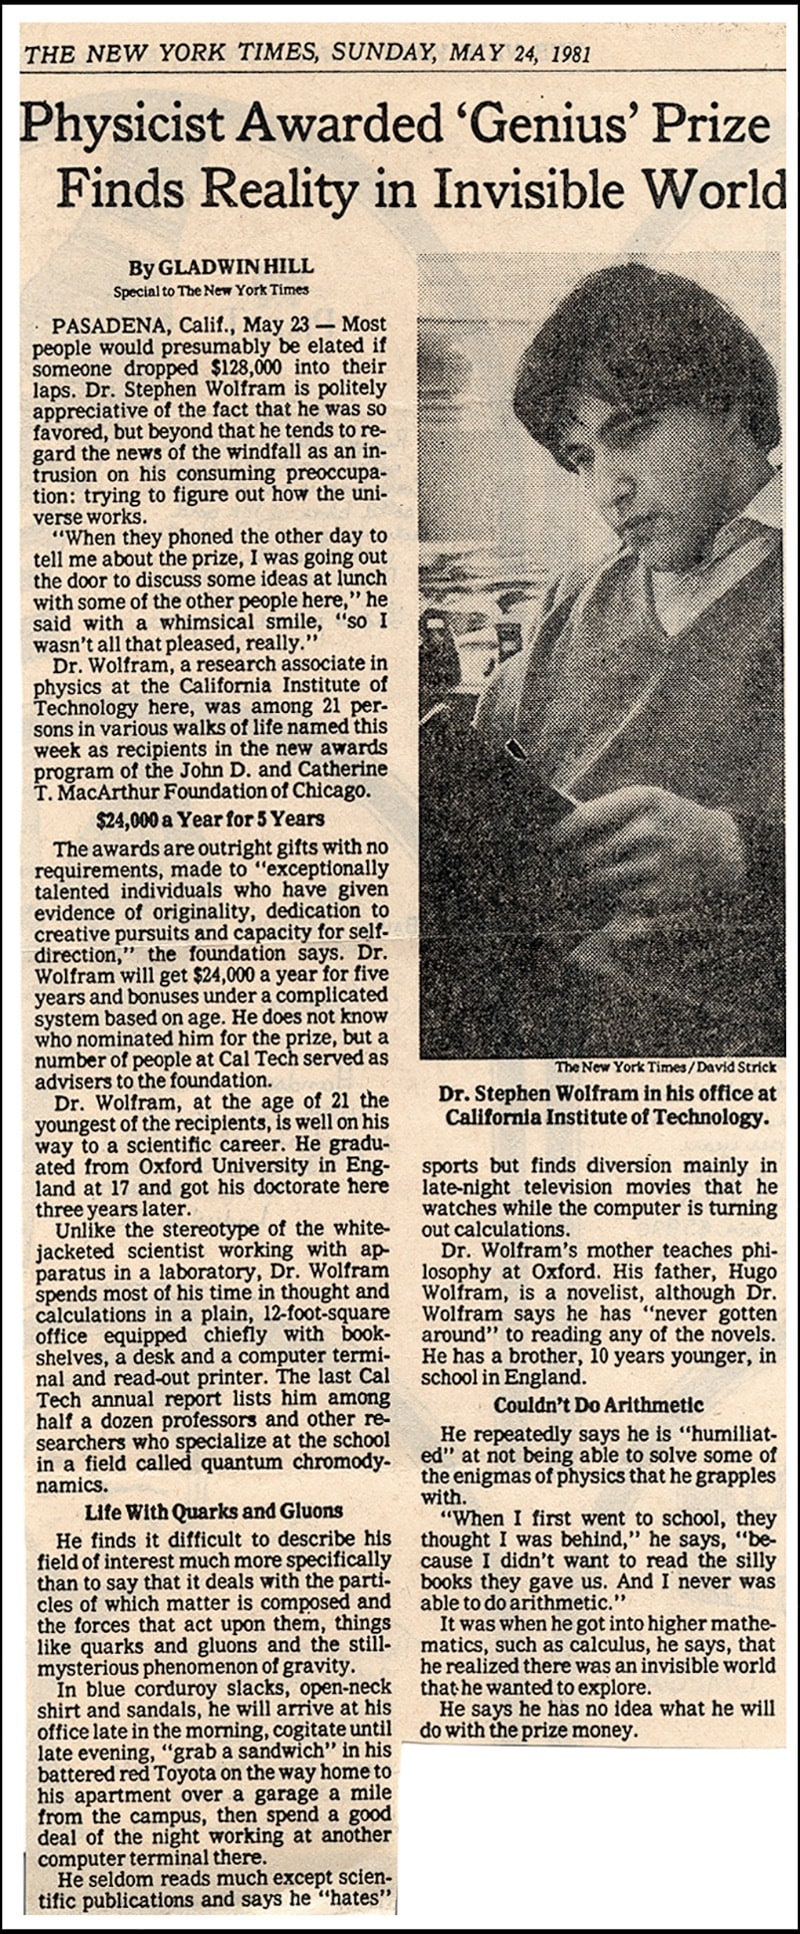 he life and times of Stephen Wolfram. 1981: A little media adventure...